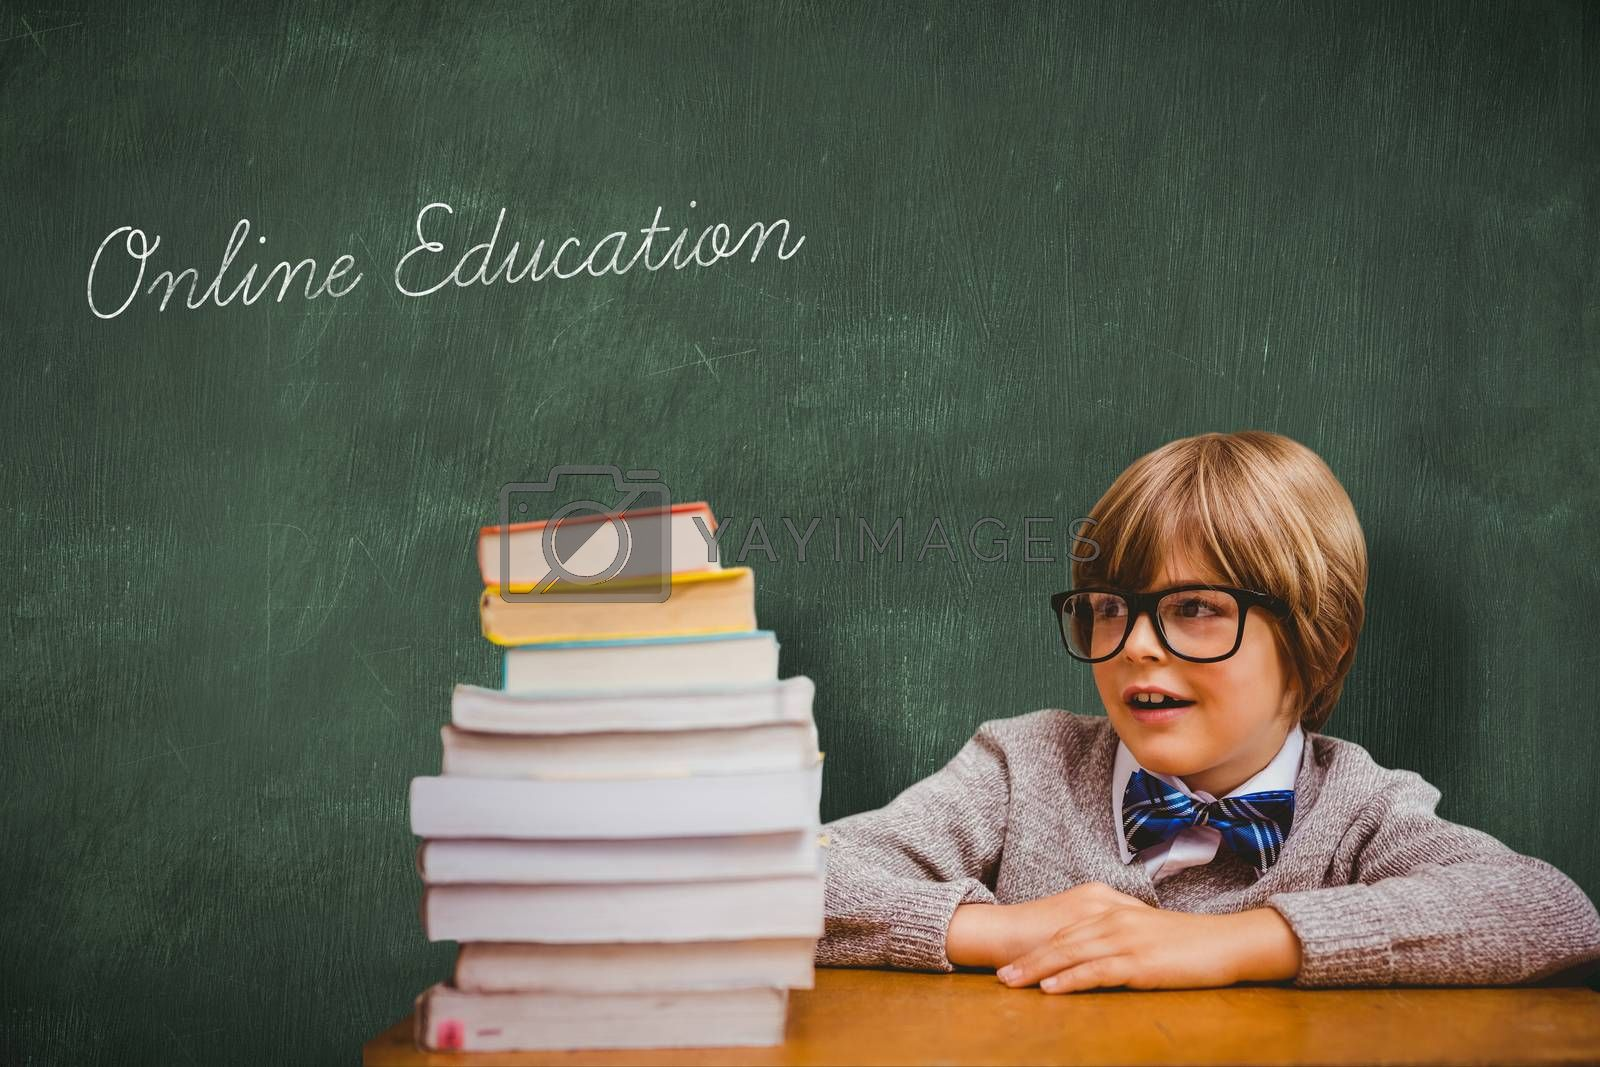 The word online education and cute pupil with pile of books against green chalkboard